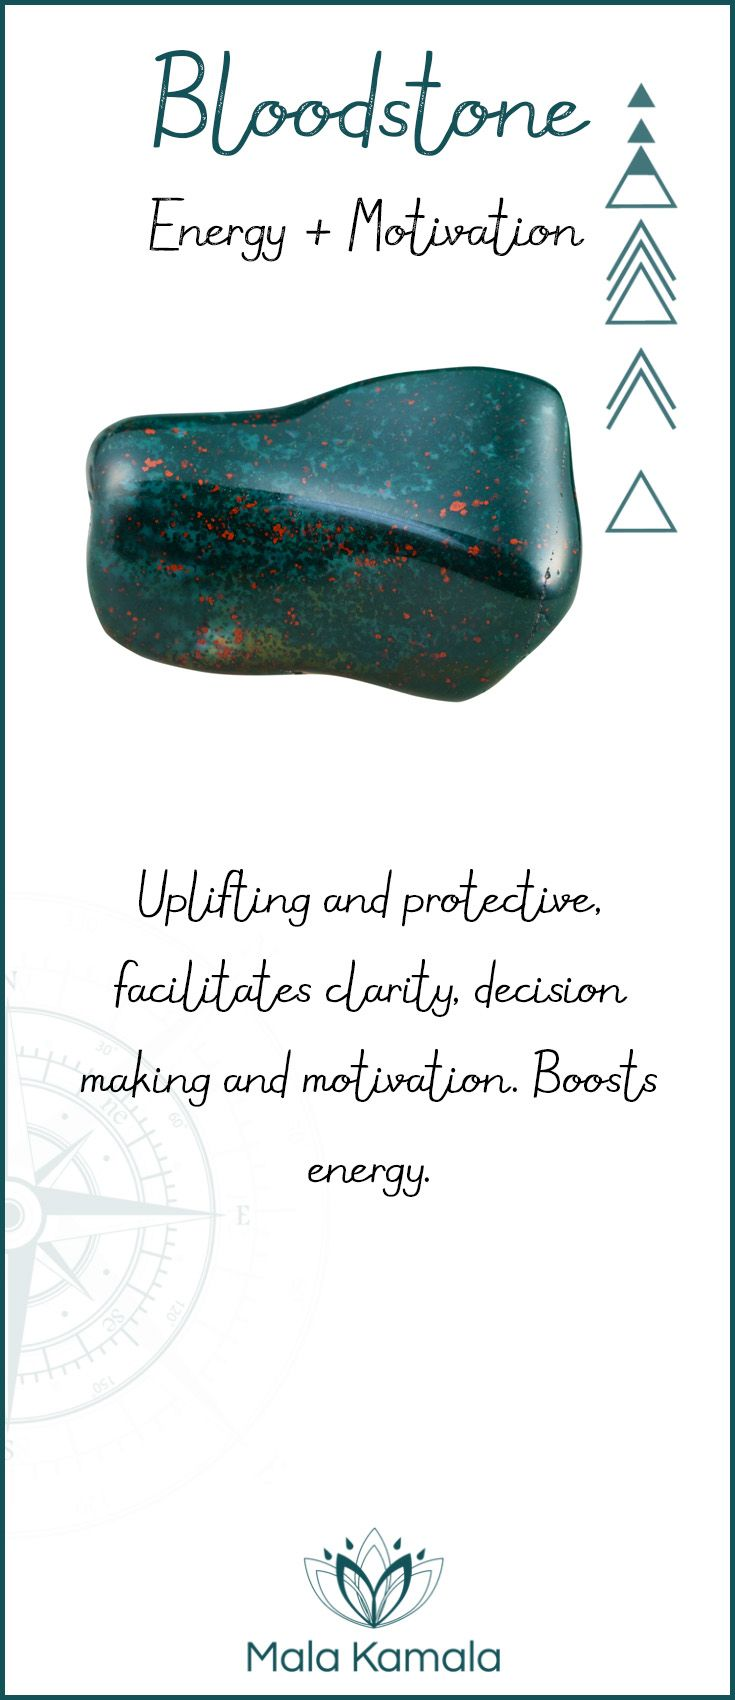 What is the meaning and crystal and chakra healing properties of bloodstone? A stone for energy and motivation.